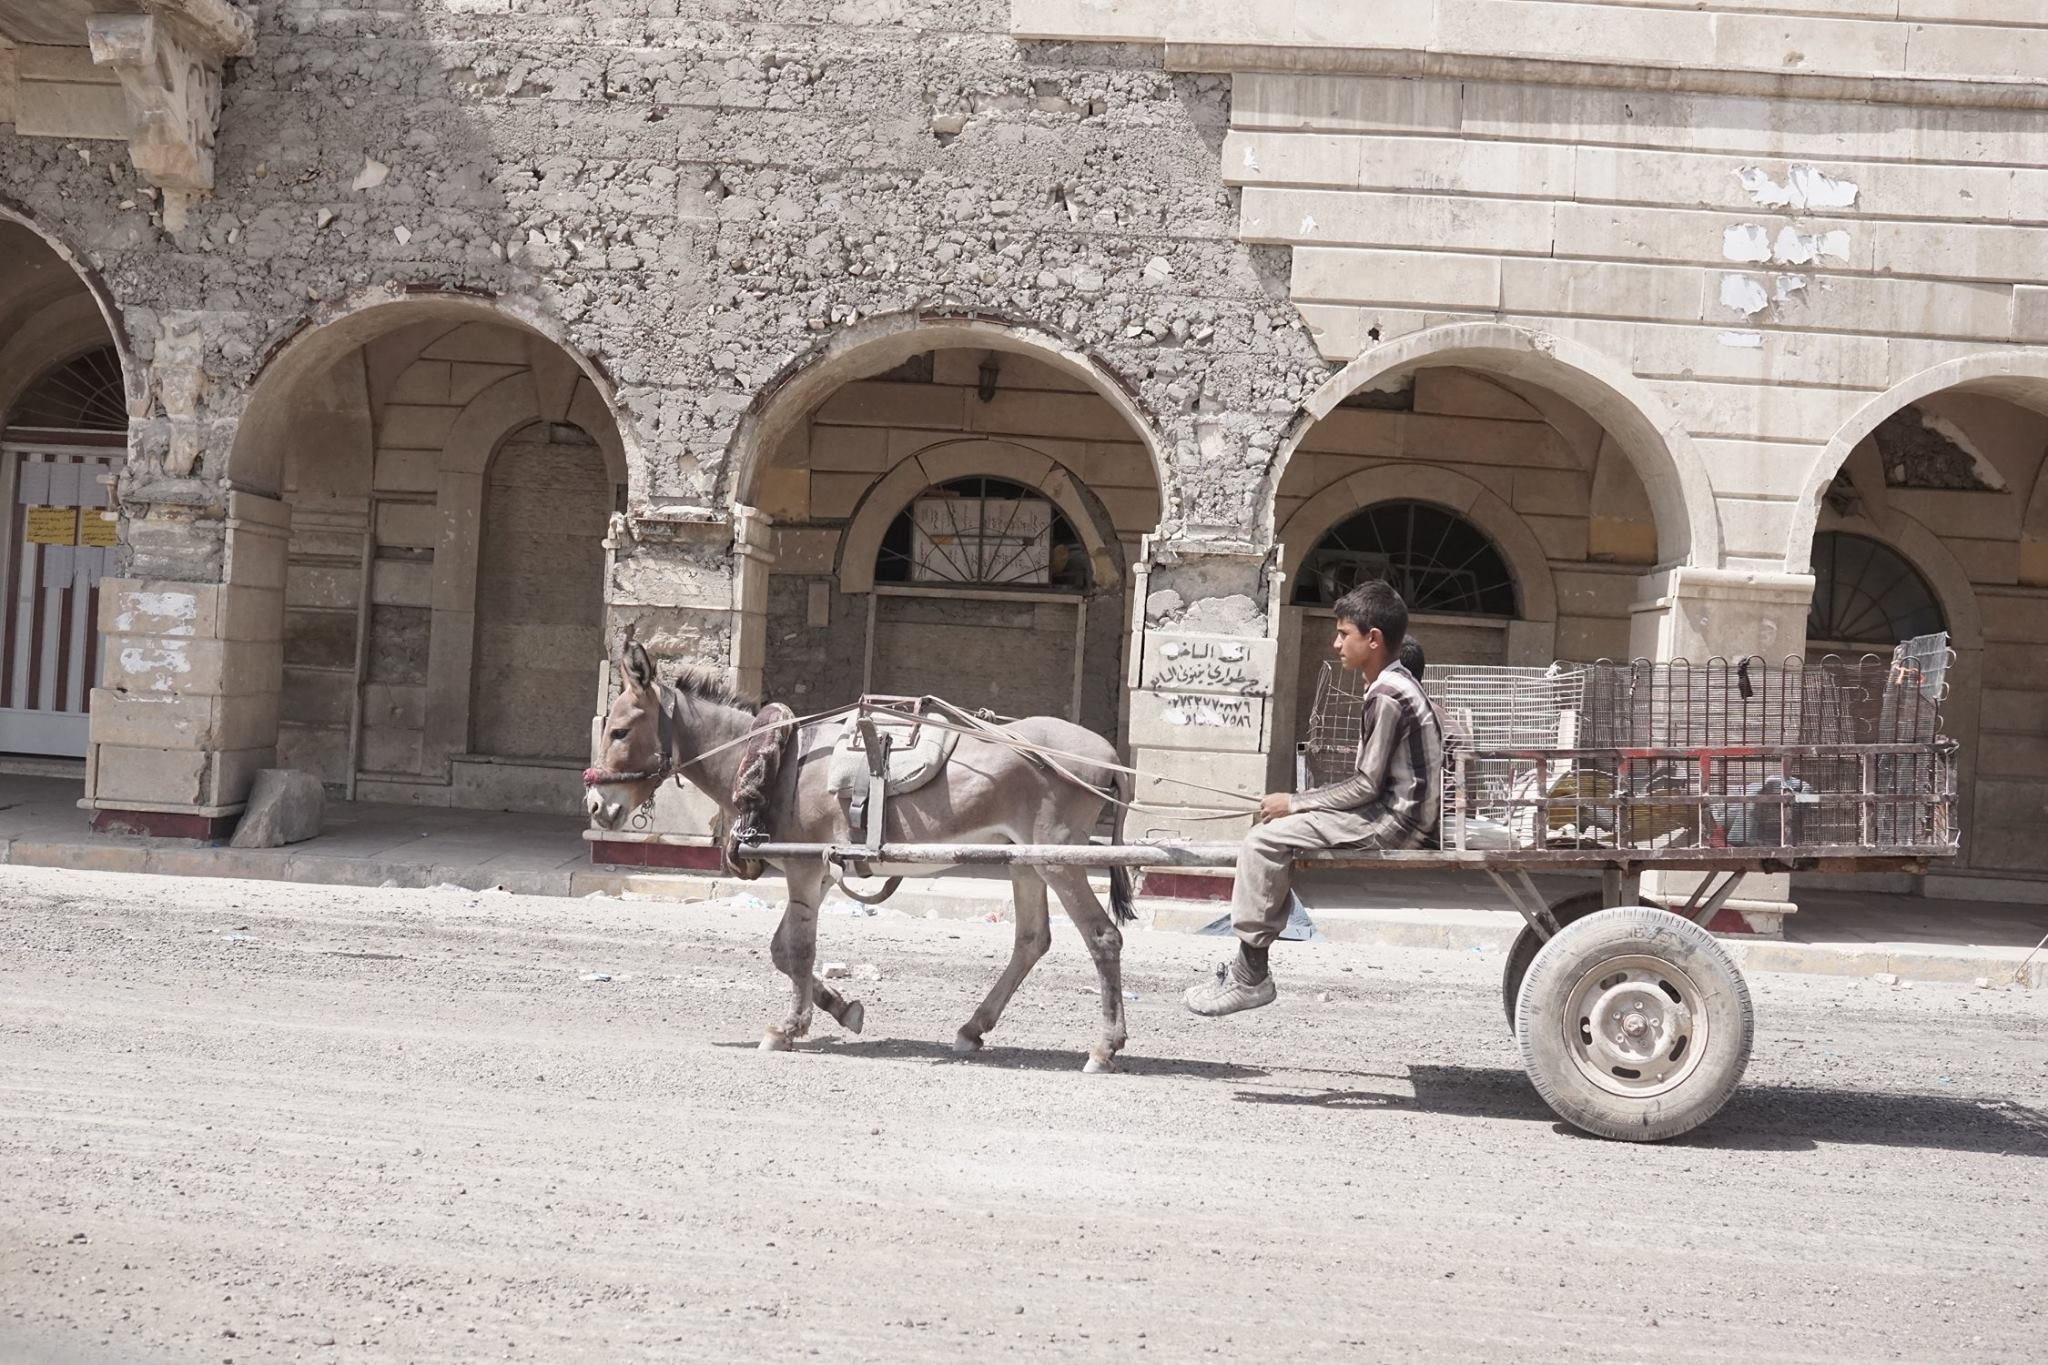 Catalystas observed boys making ends meet in the old city of mosul transporting good by donkey on once busy street of the former held ISIS territory